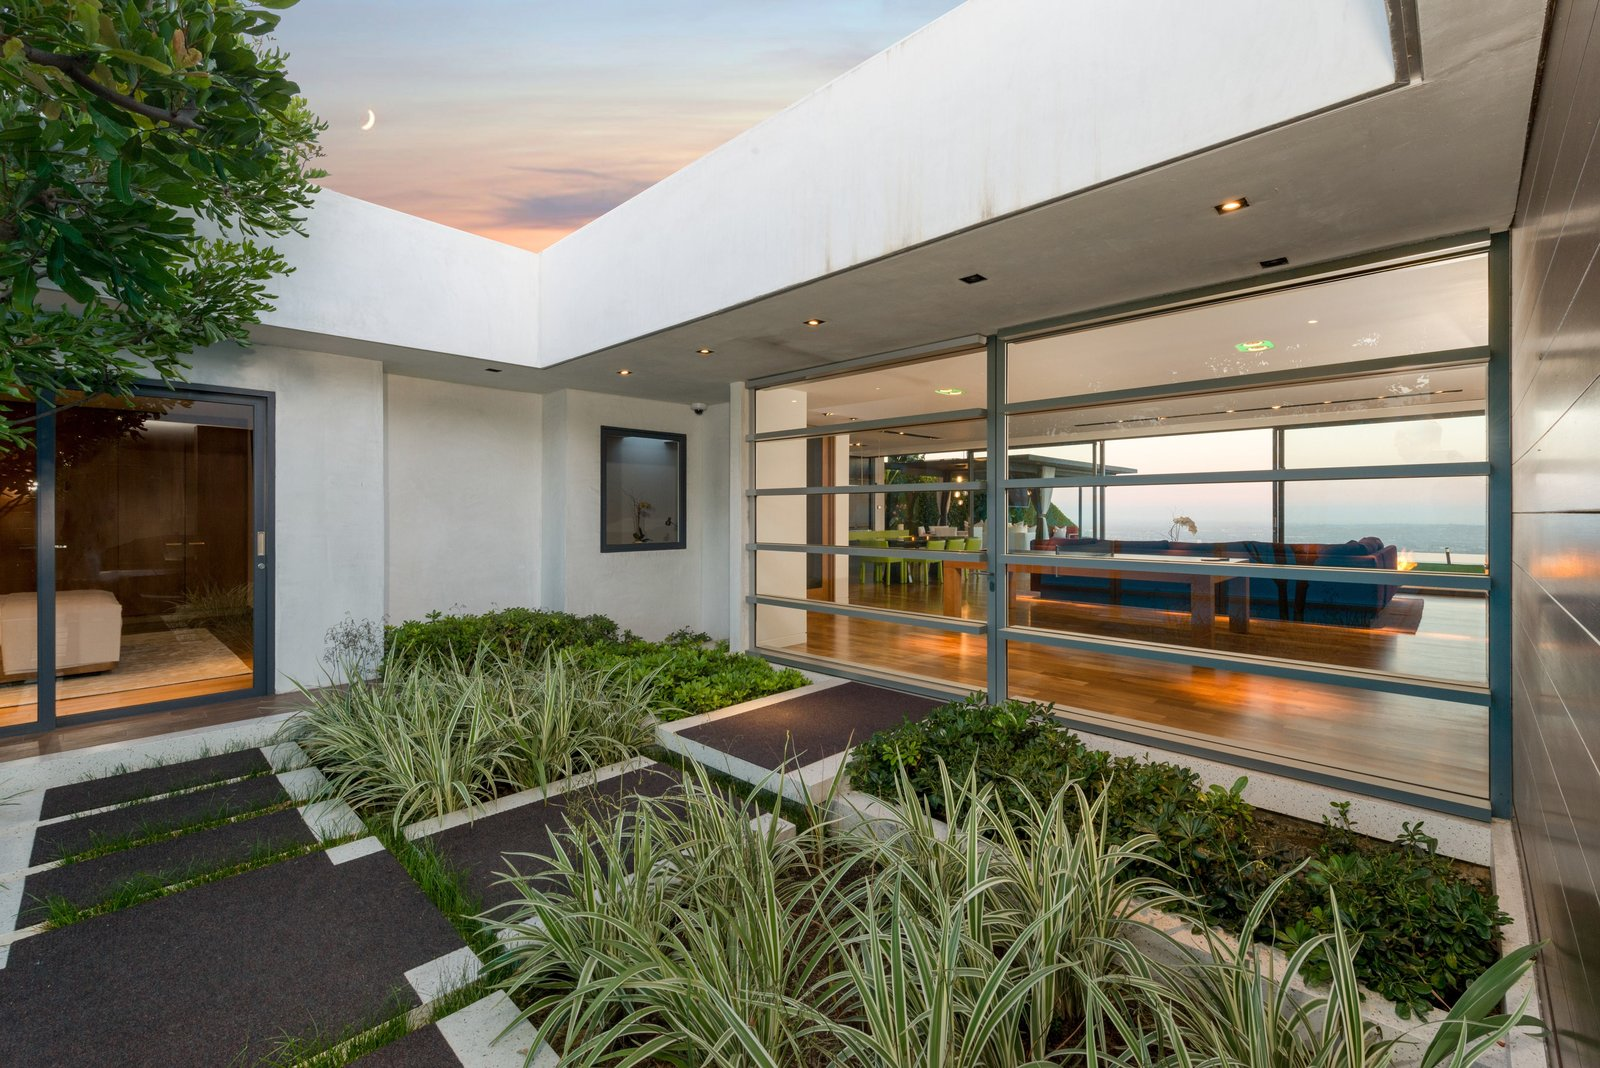 Outdoor, Front Yard, Shrubs, Hardscapes, and Pavers Patio, Porch, Deck  Hopen Place from 'Friends' Star Matthew Perry's Midcentury Stunner in the Hollywood Hills Is For Sale